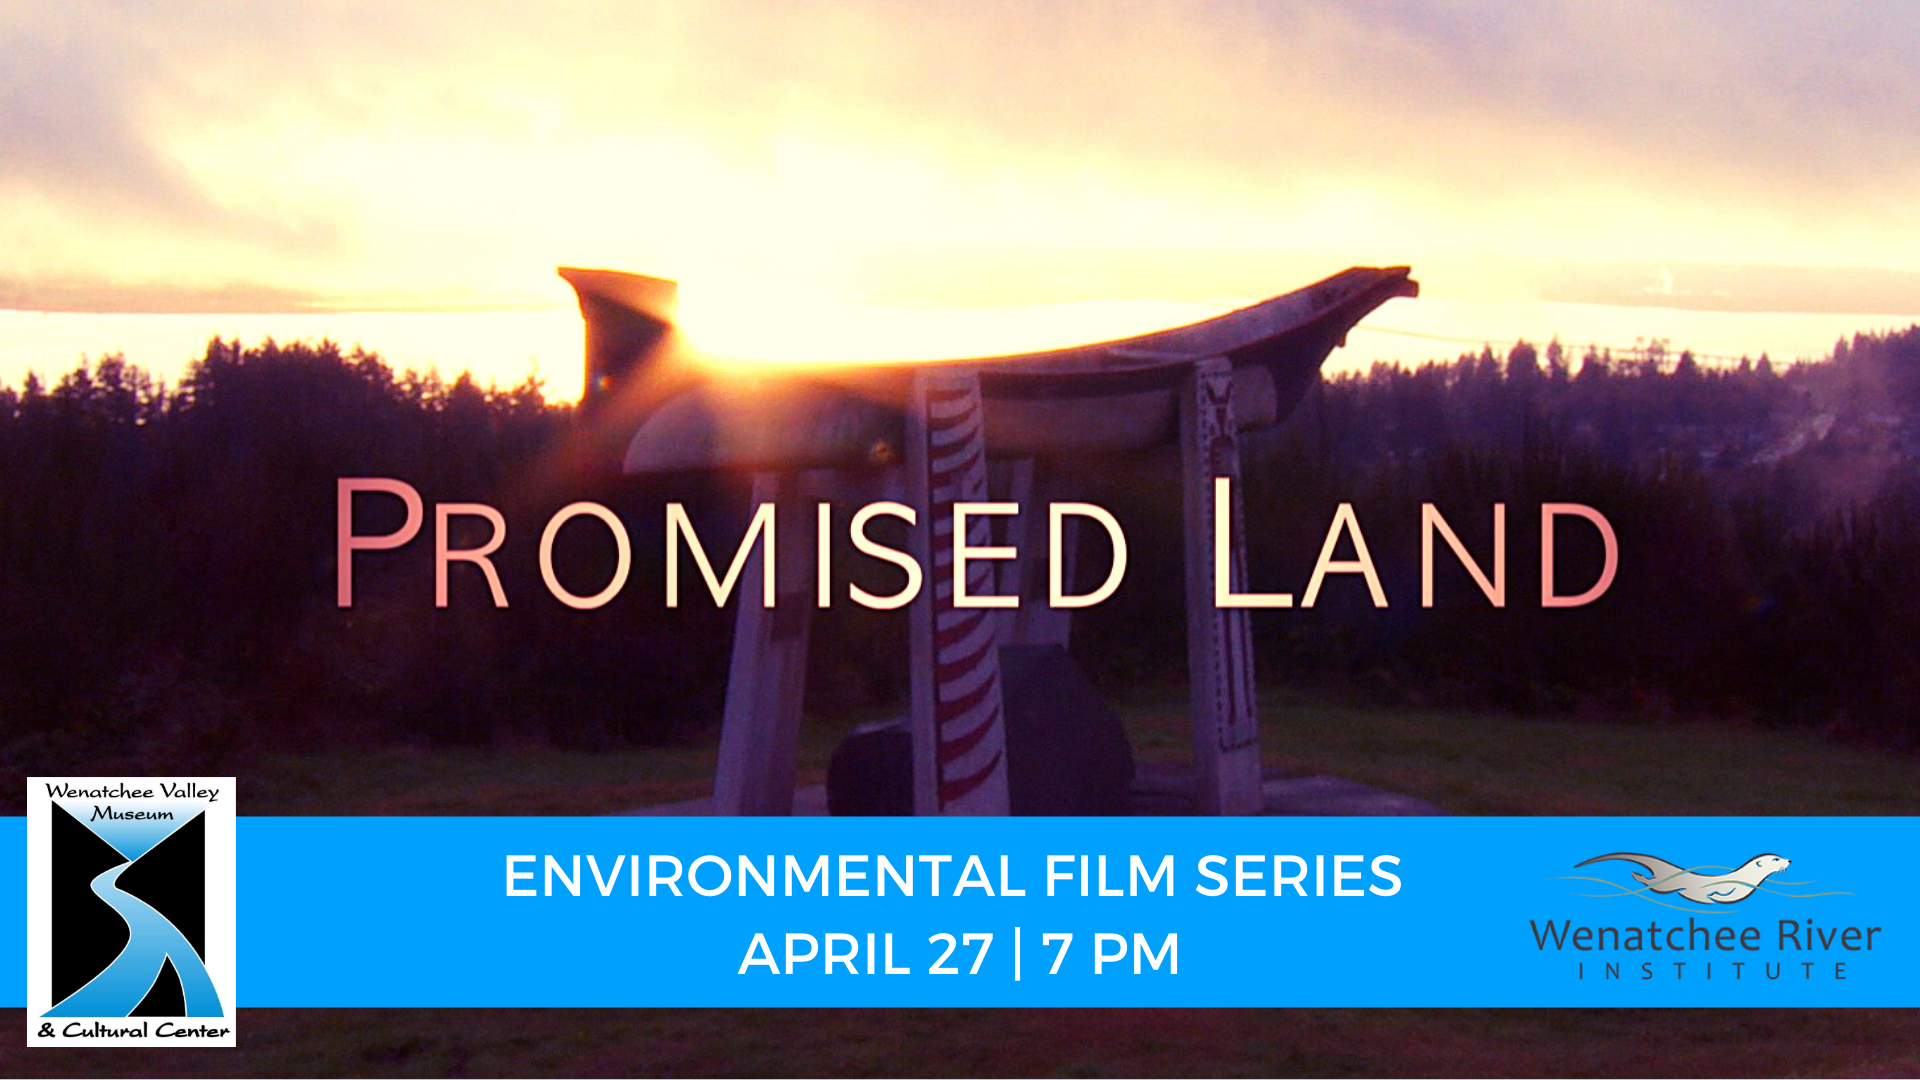 Promised Land Panel Discussion